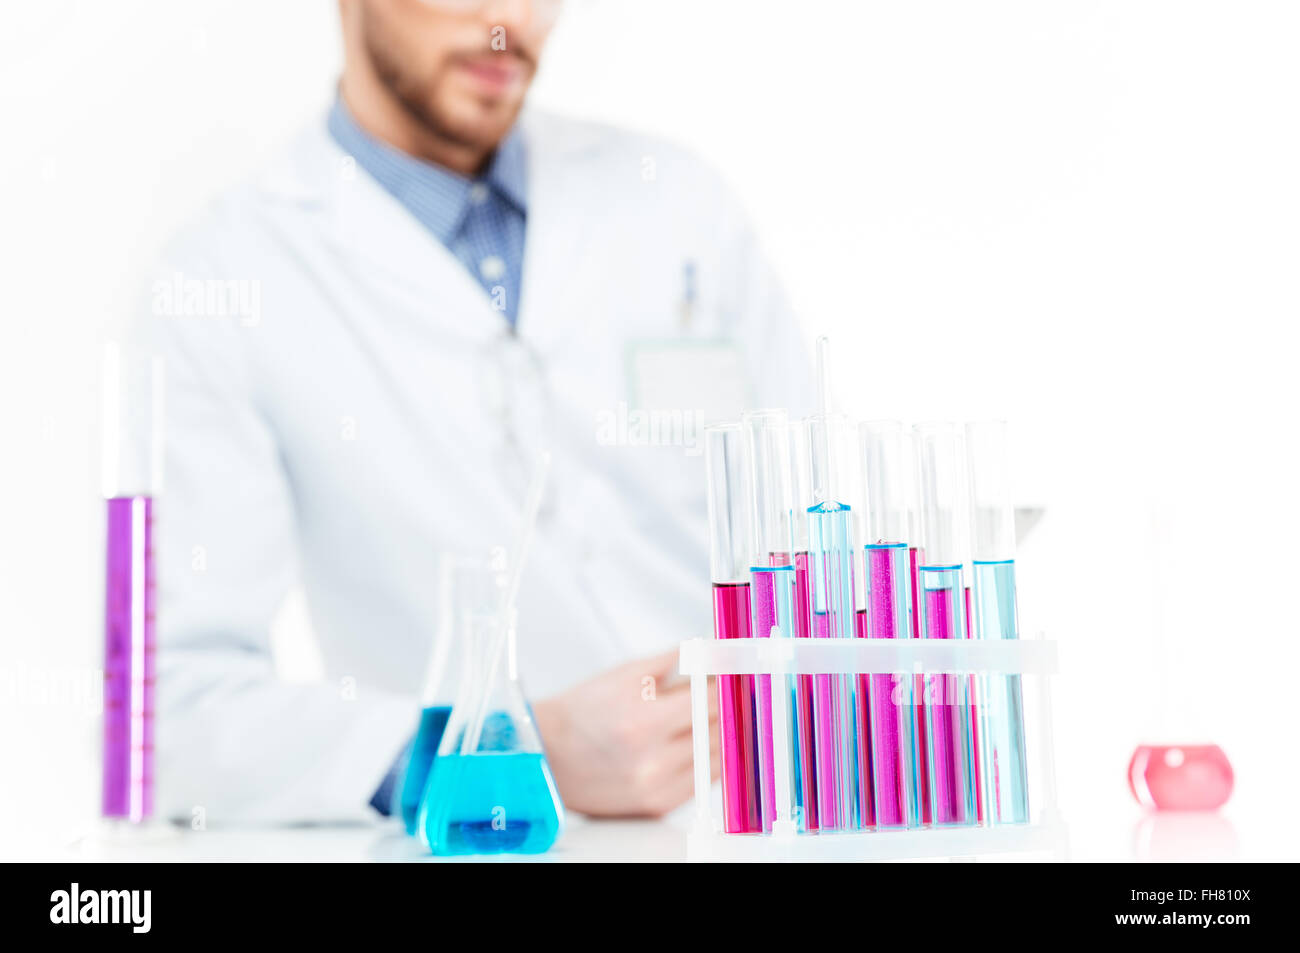 Cropped image of a scientist pouring chemicals in a laboratory - Stock Image